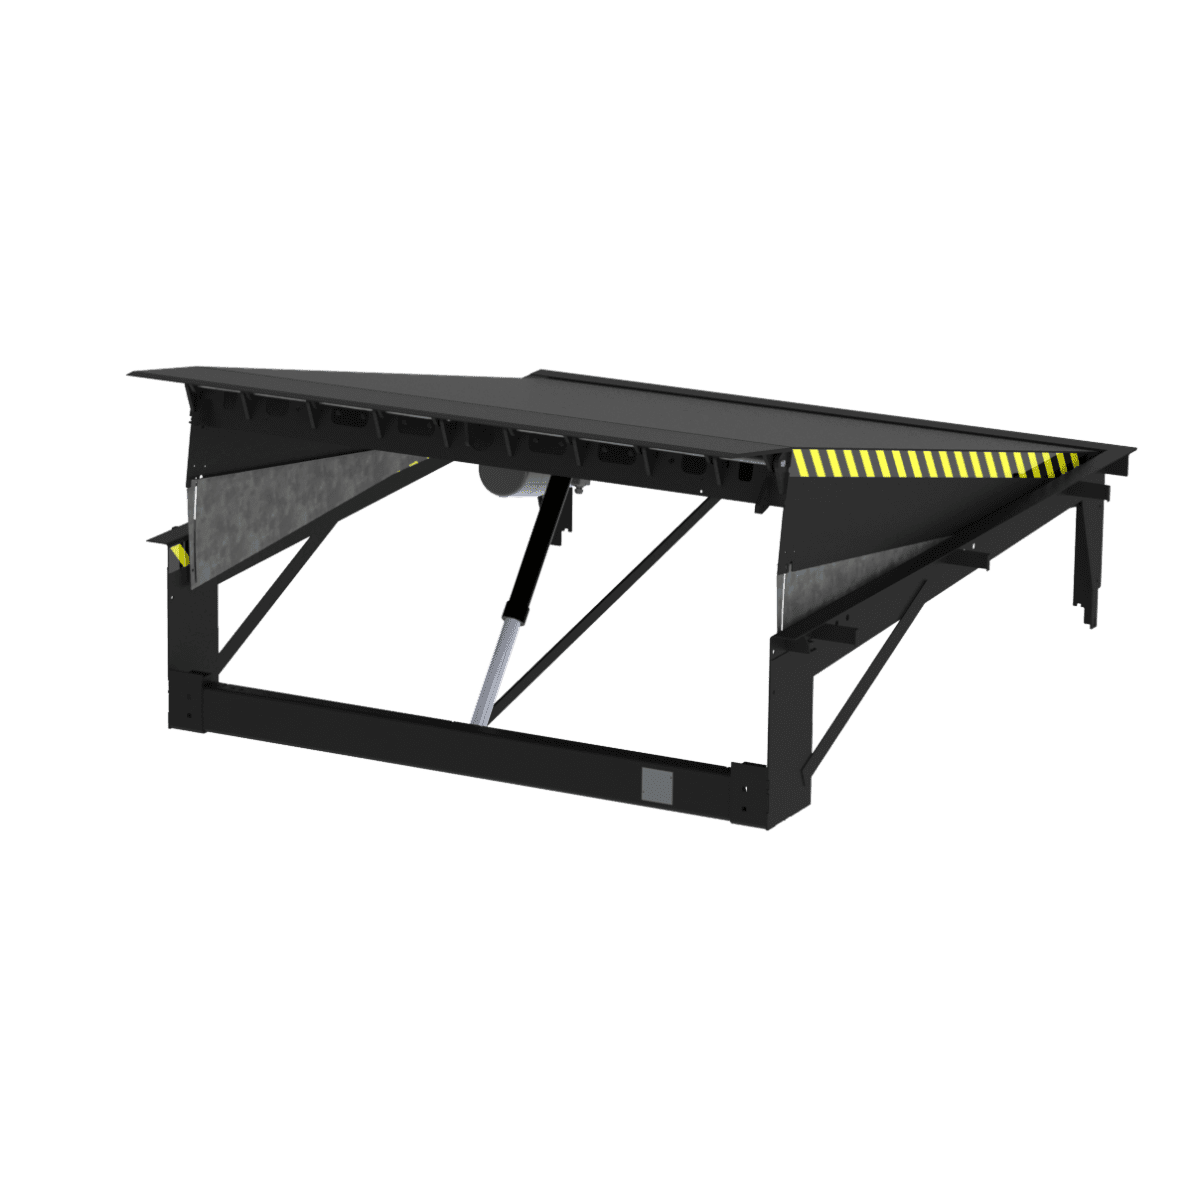 Hinged swing lip dock leveller